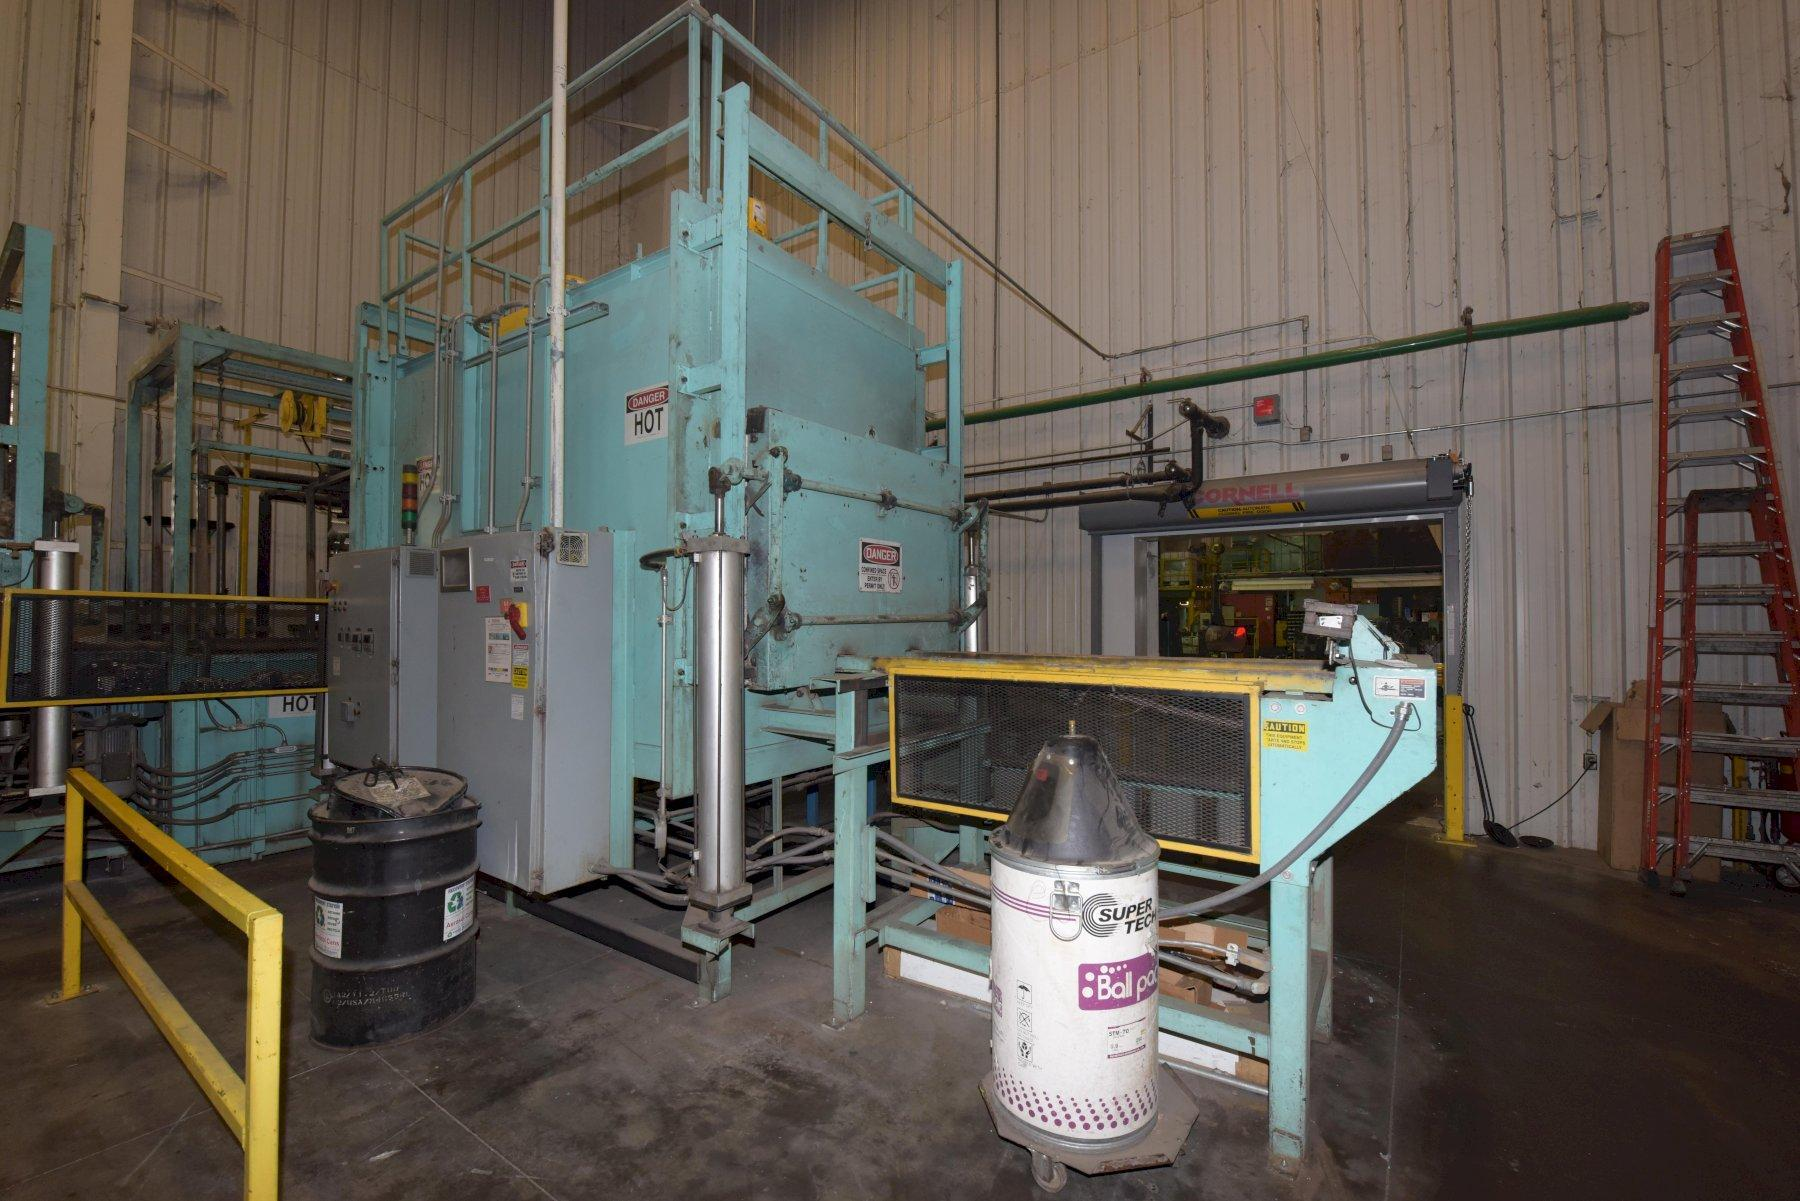 HTF COMPLETE T6 HEAT TREAT LINE WITH AGE, TEMPER AND QUENCH S.N 0601 TEMPER RATED AT 1000 DEGREE F, AGE RATED AT 450 DEGREE F, WITH 2007 OBERLIN MODEL OPF01 PRESSURE FILTER S/N 067